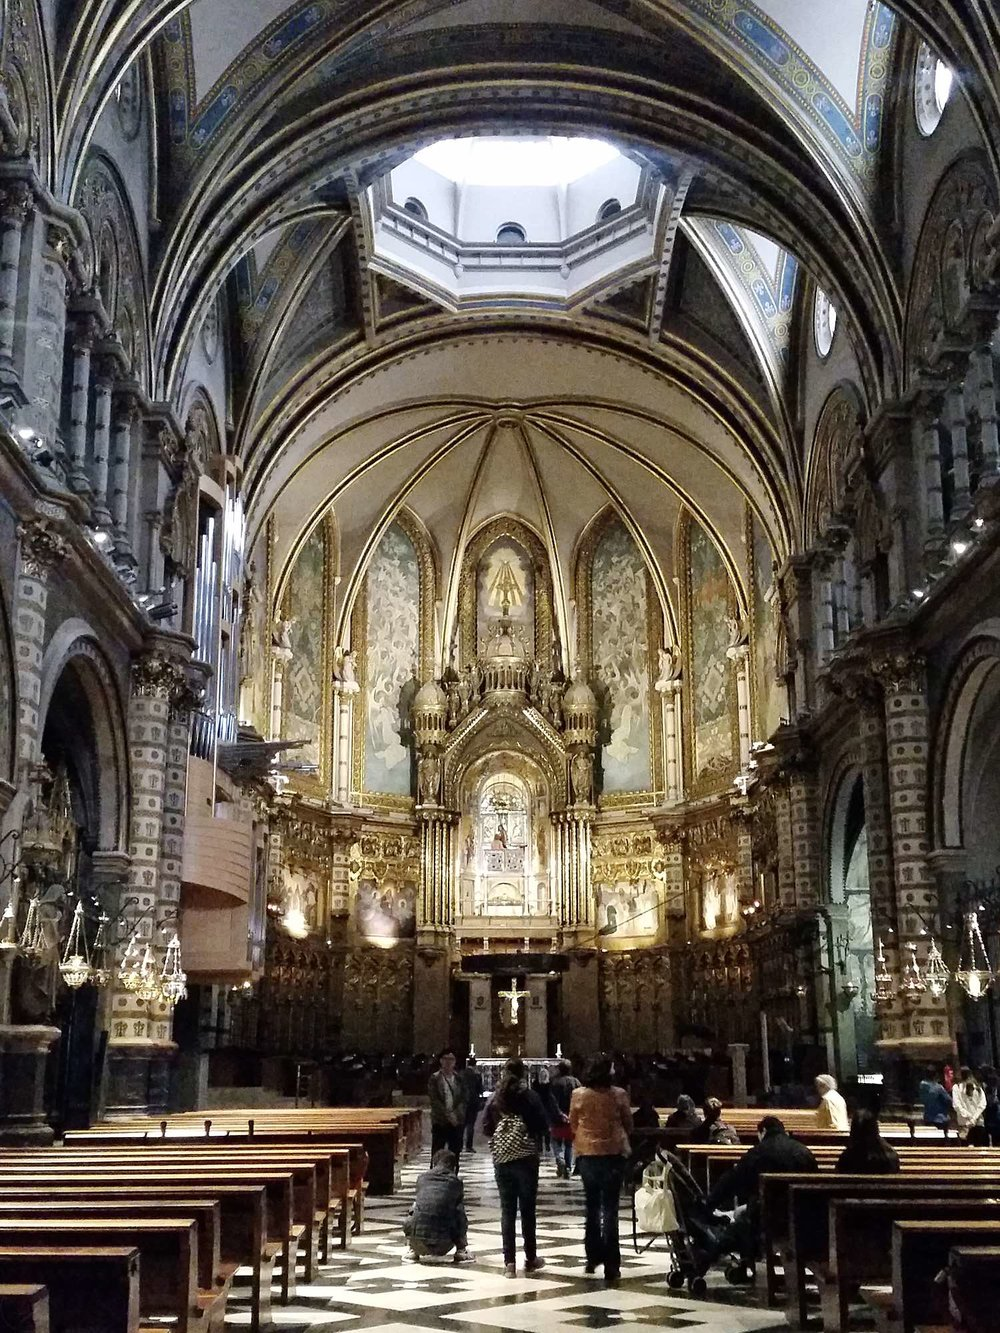 montserrat-catalonia-spain-character-32-c32-globetrotter-travel-basilica-church